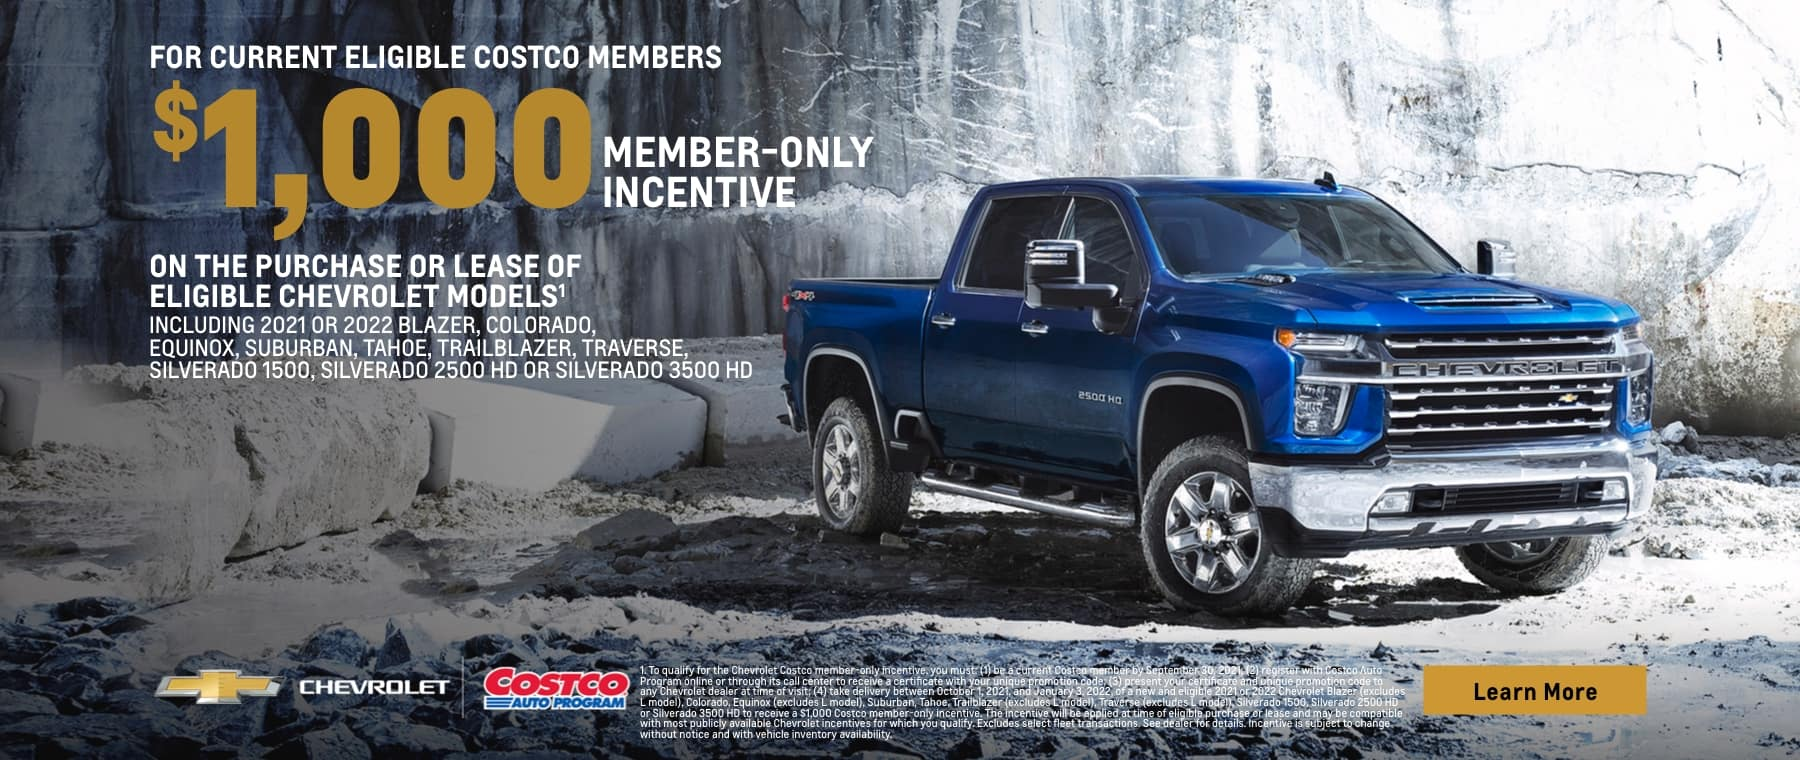 For current eligible Costco members, up to $1000 member only incentive on certain Chevrolet models